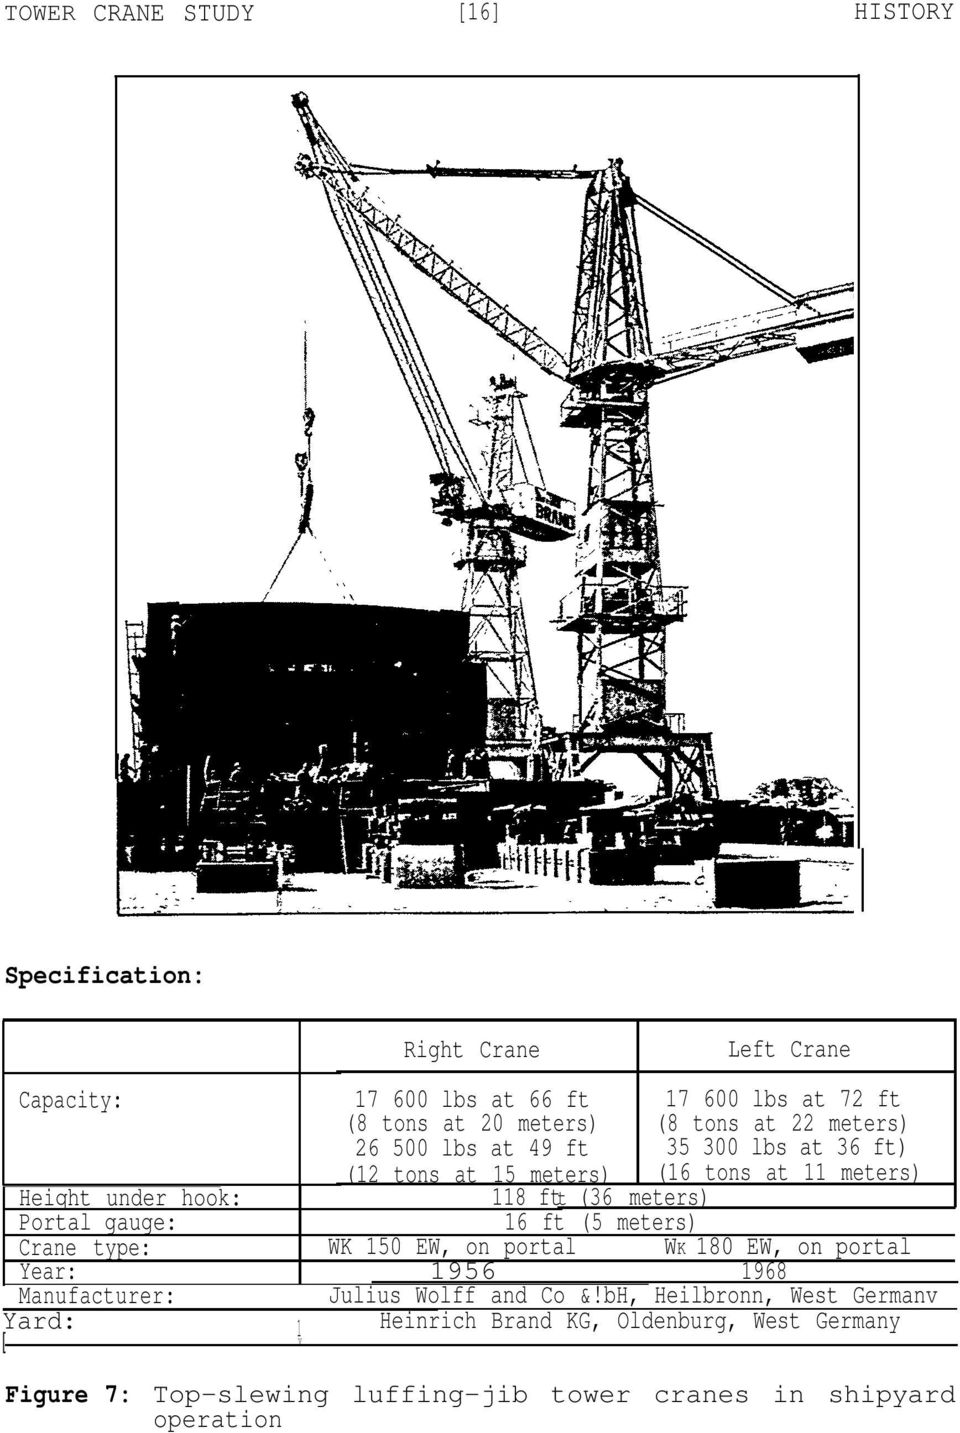 TOWER CRANES IN SHIPYARDS - PDF